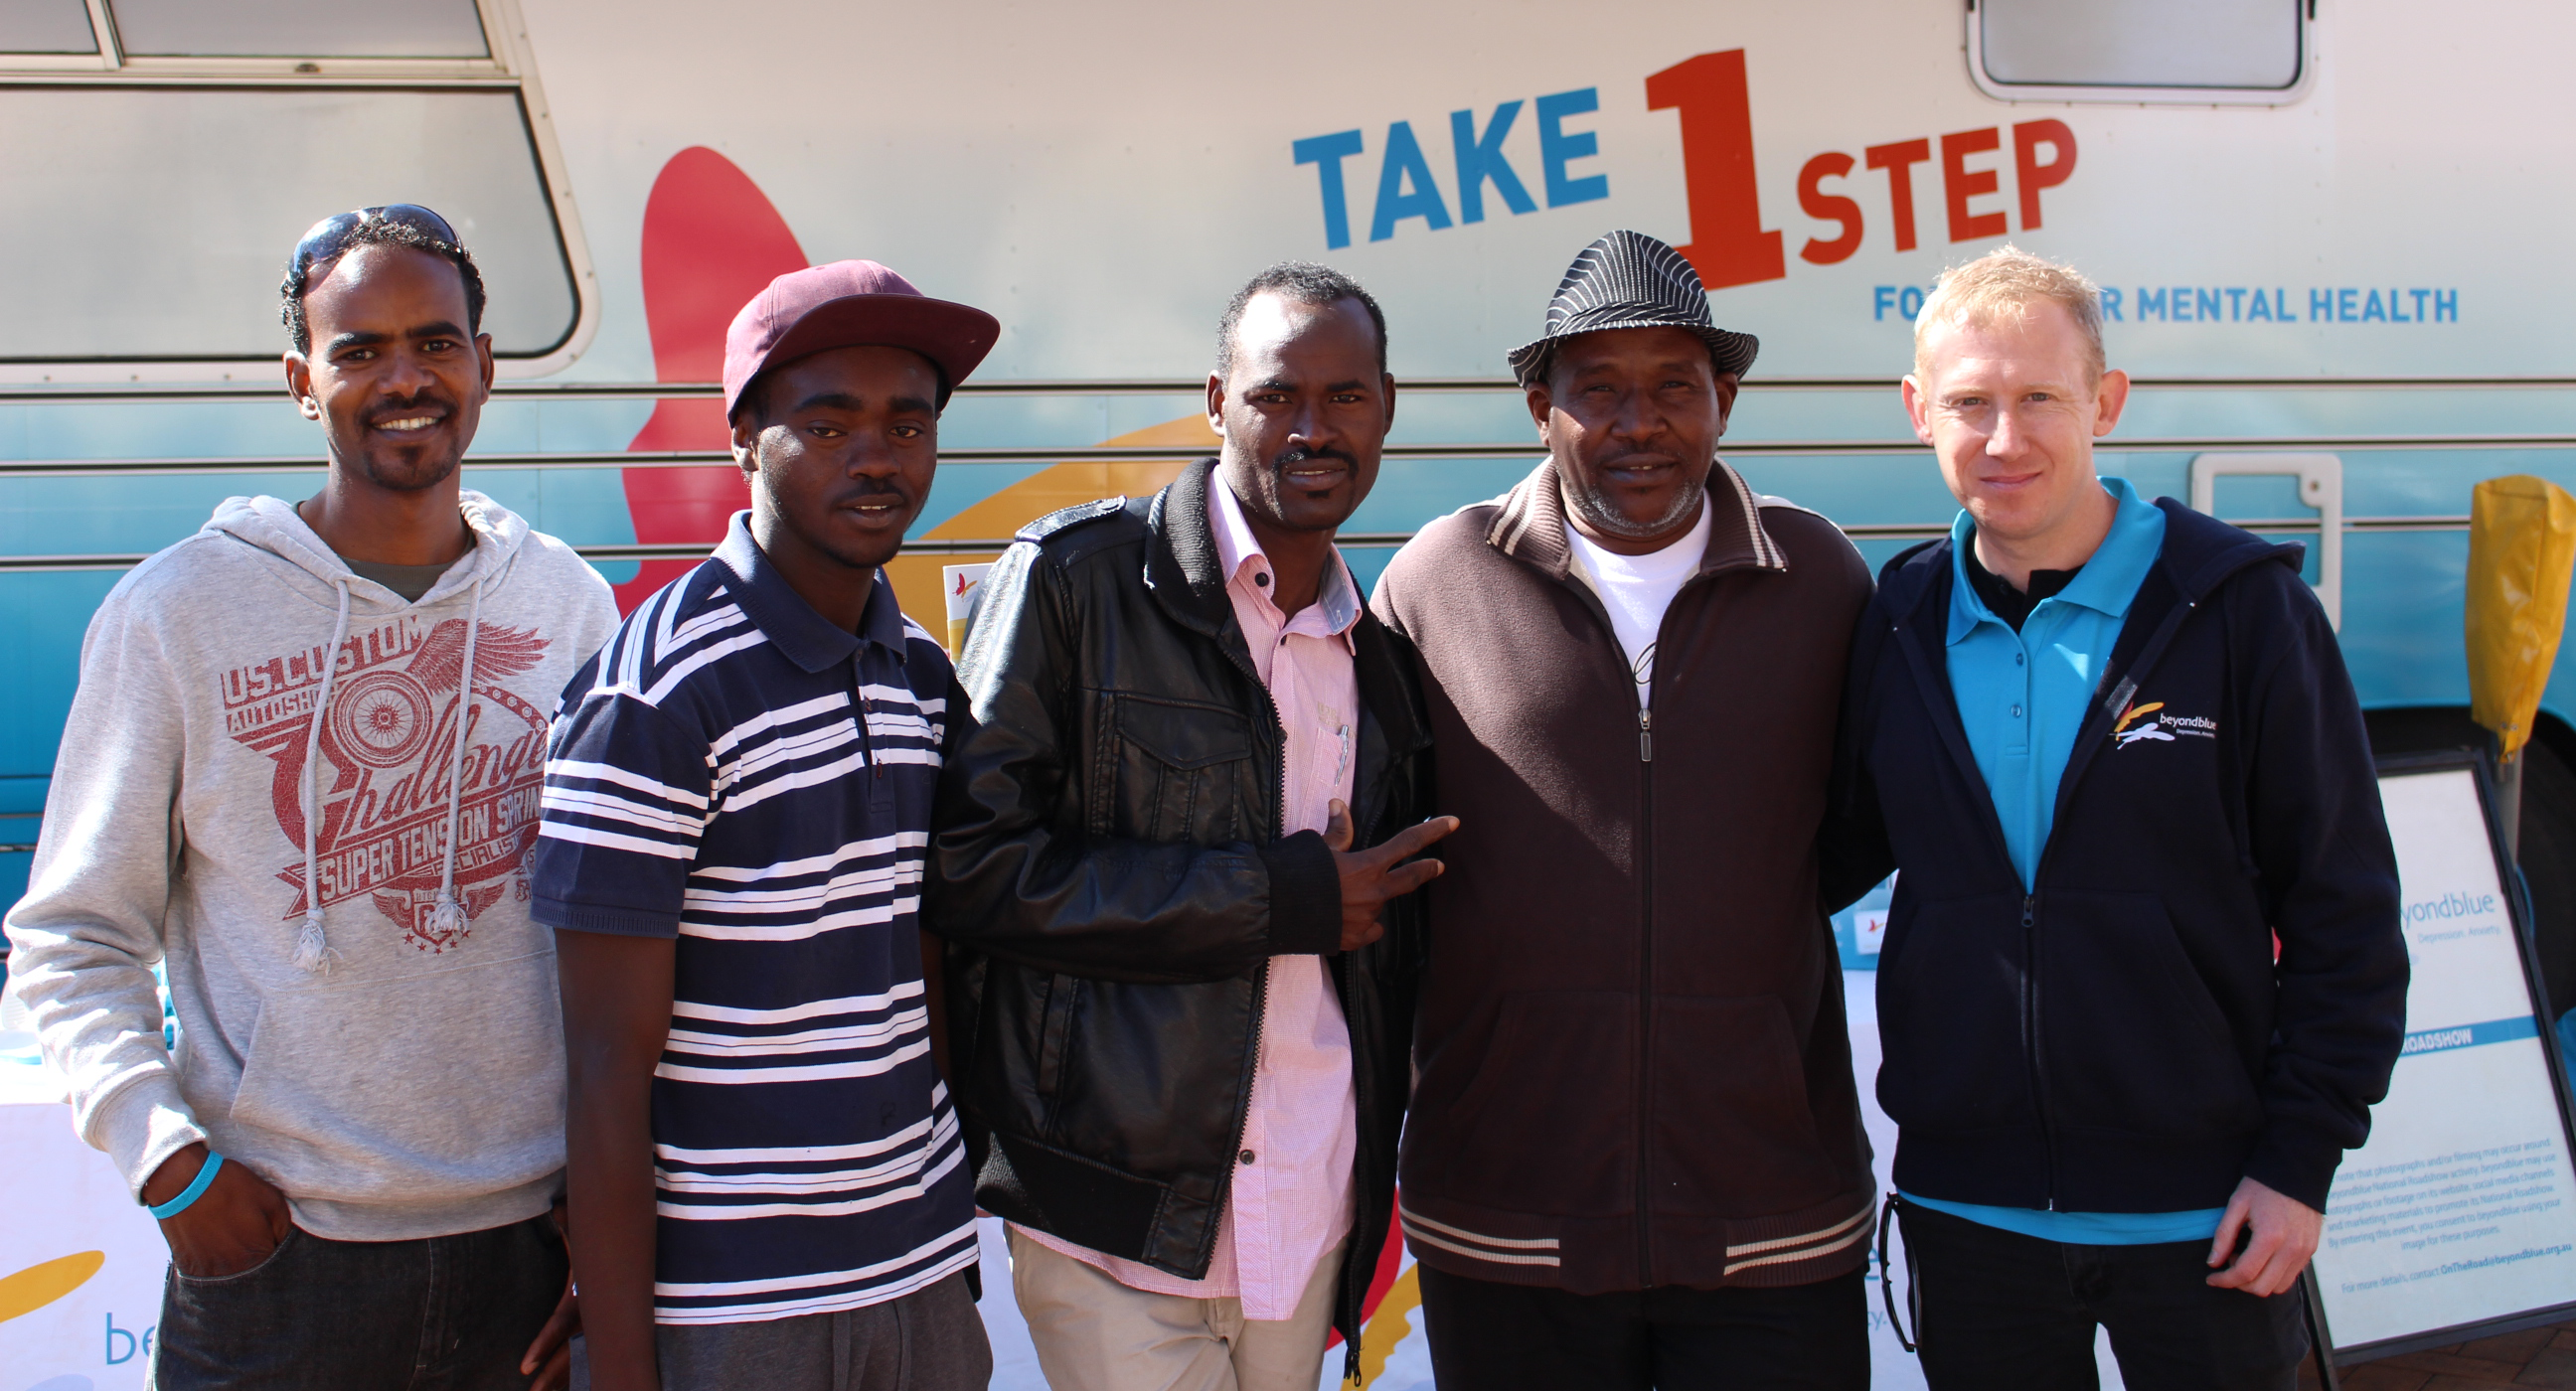 Members of a migrant support group visited the bus in Toowoomba: QLD.